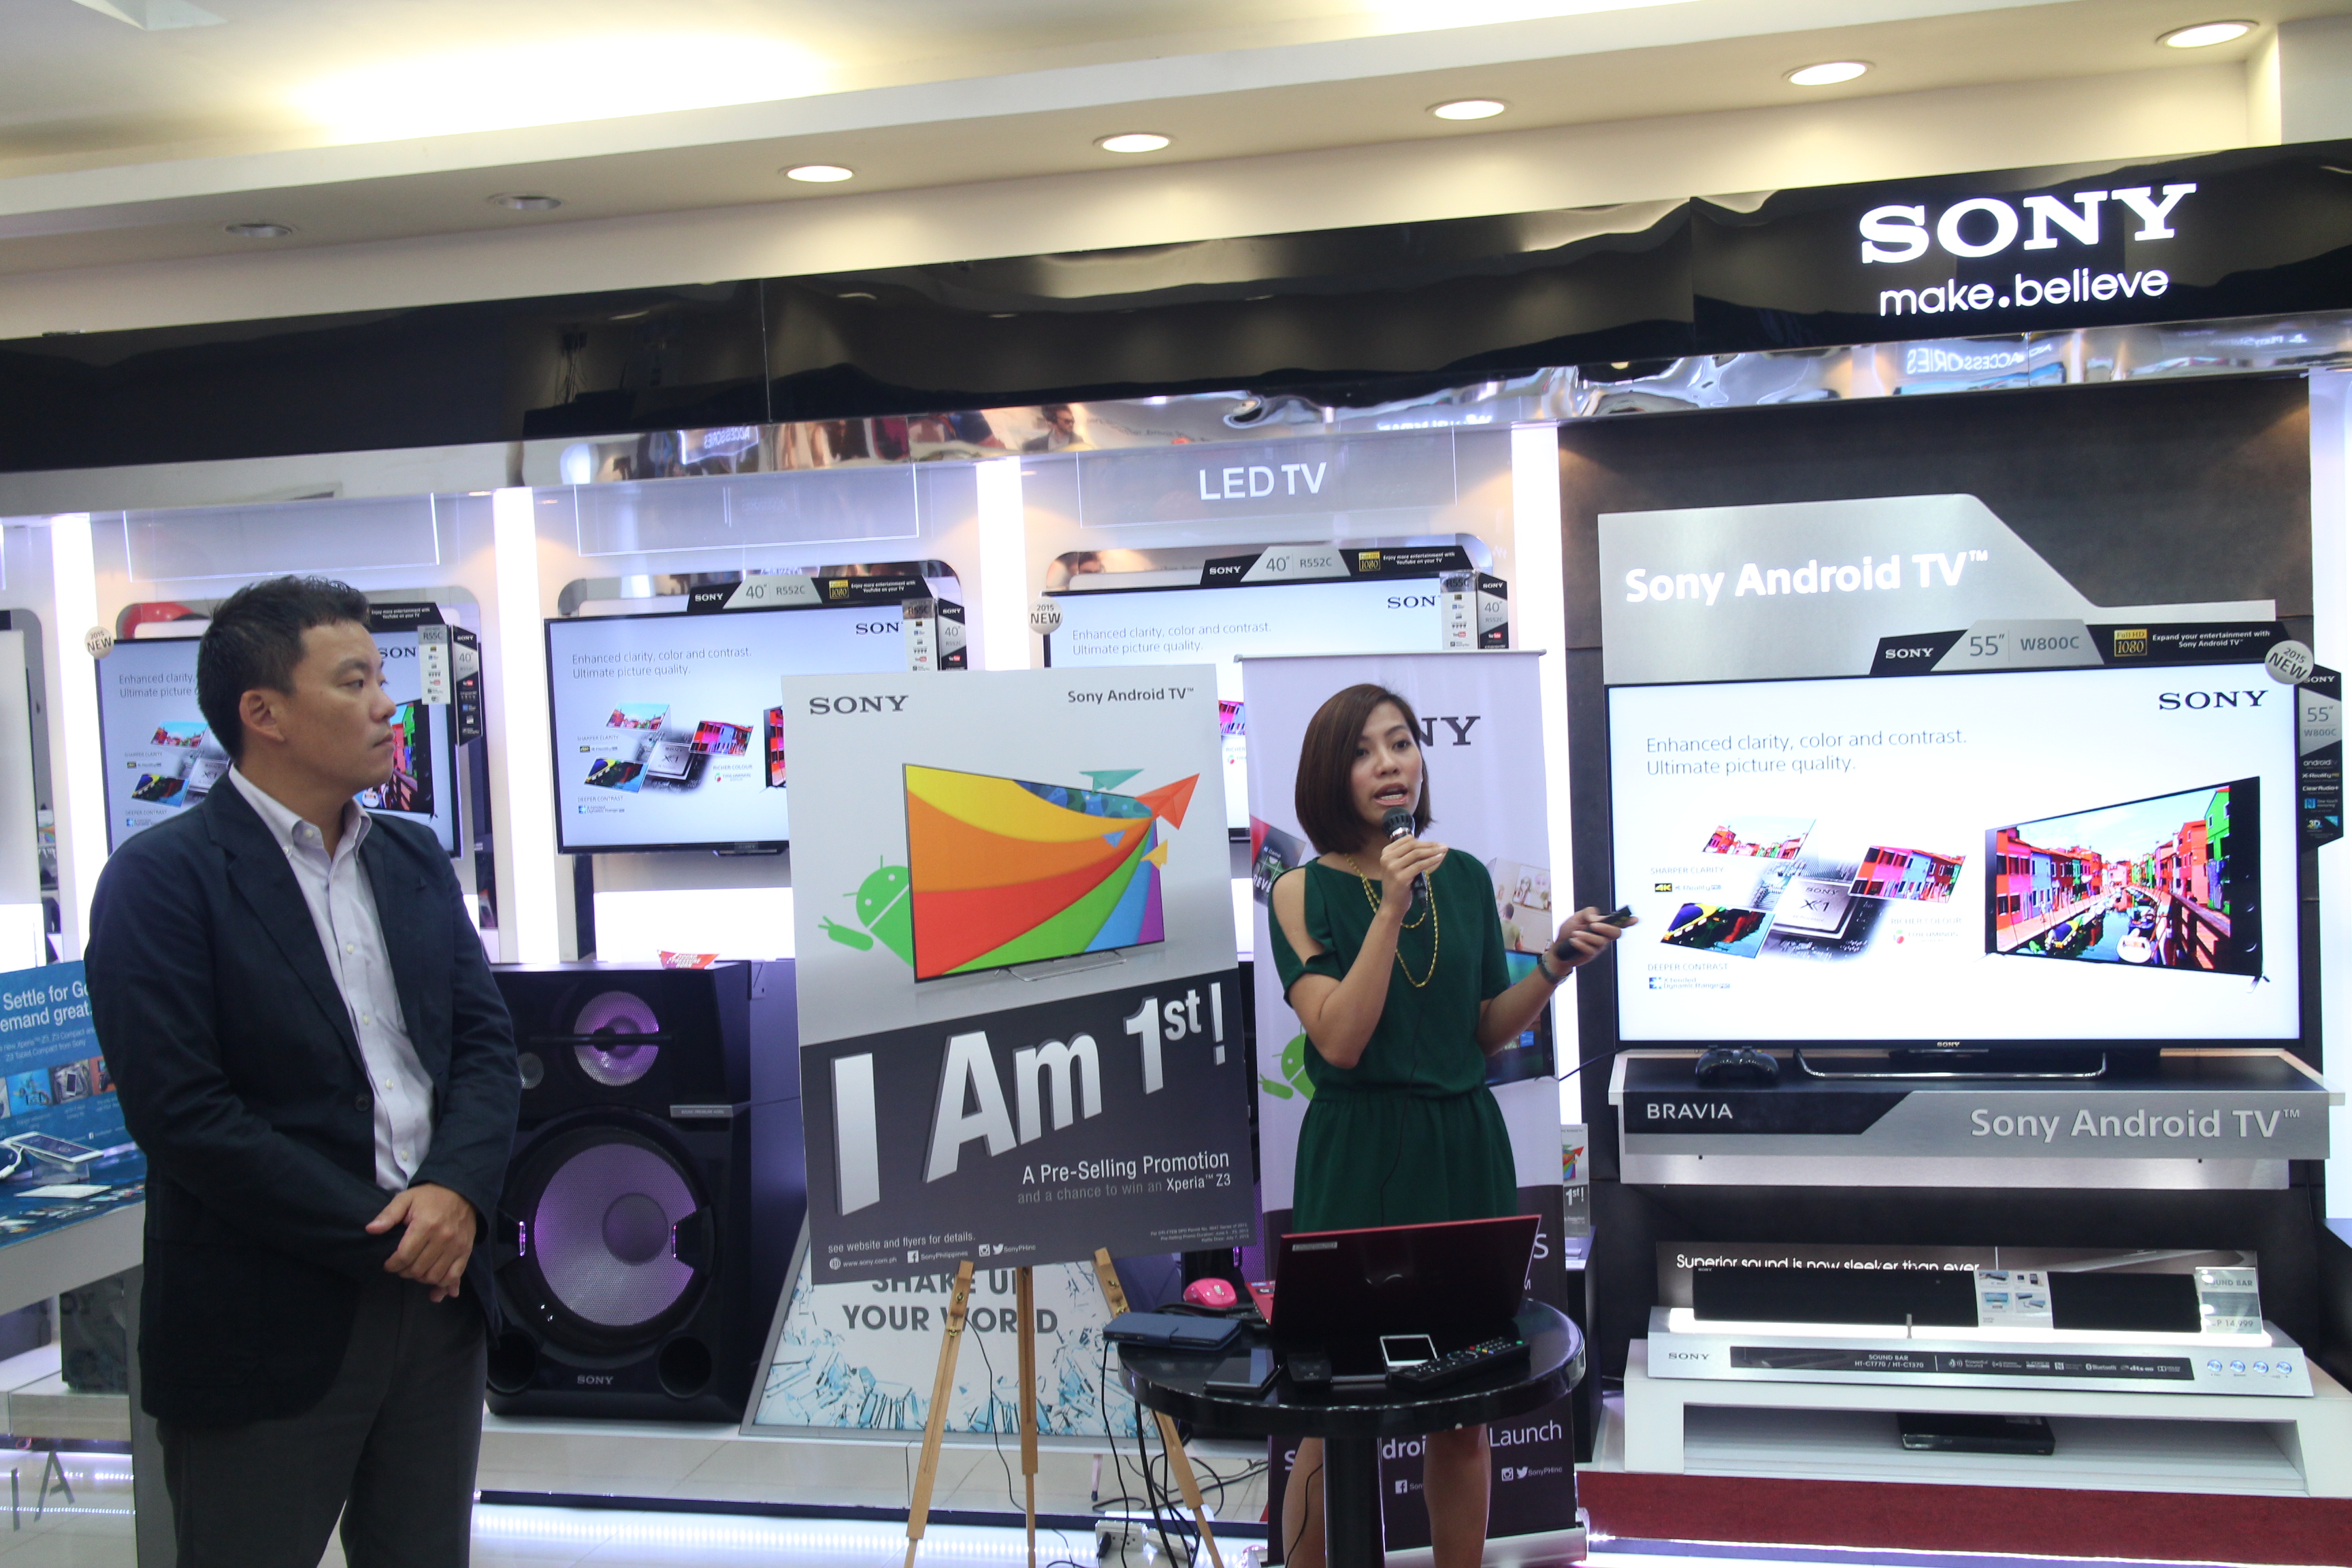 sony bravia cdo launch